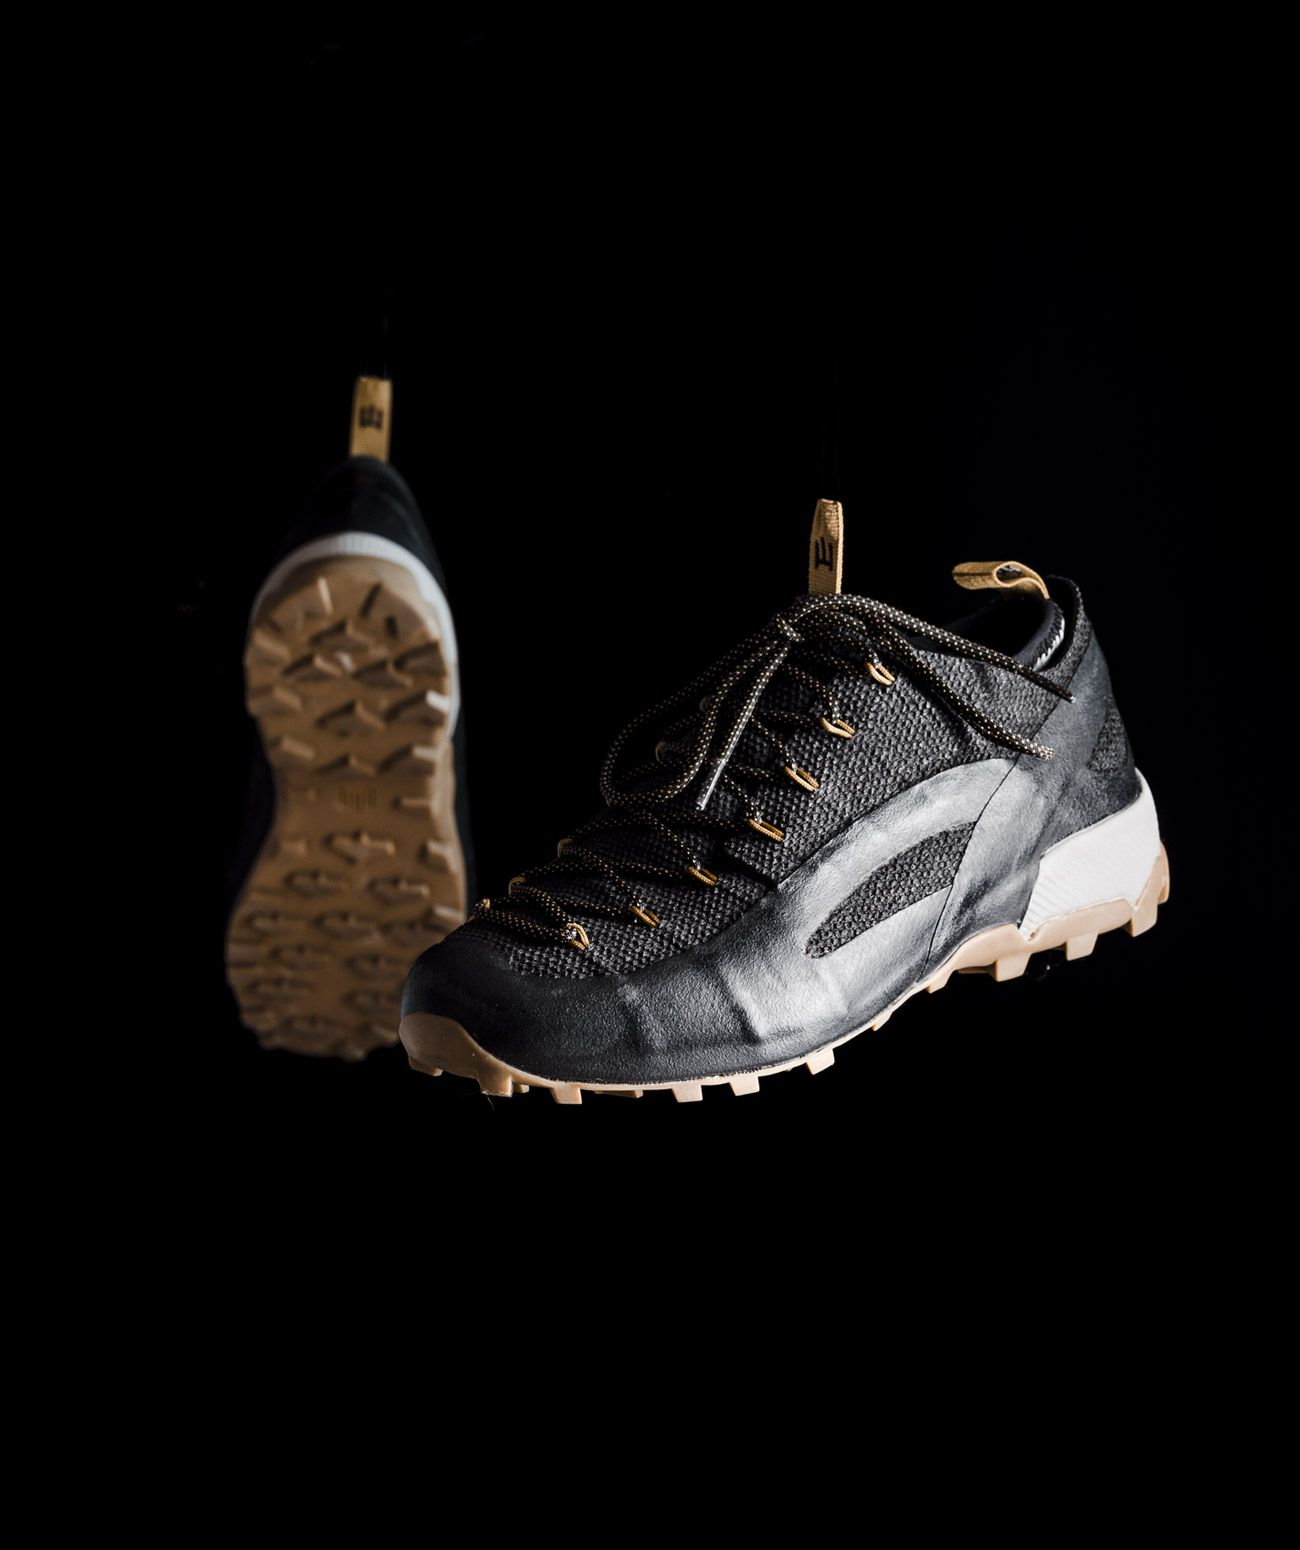 The 18 Best Hiking Boots of 2019 • Gear Patrol